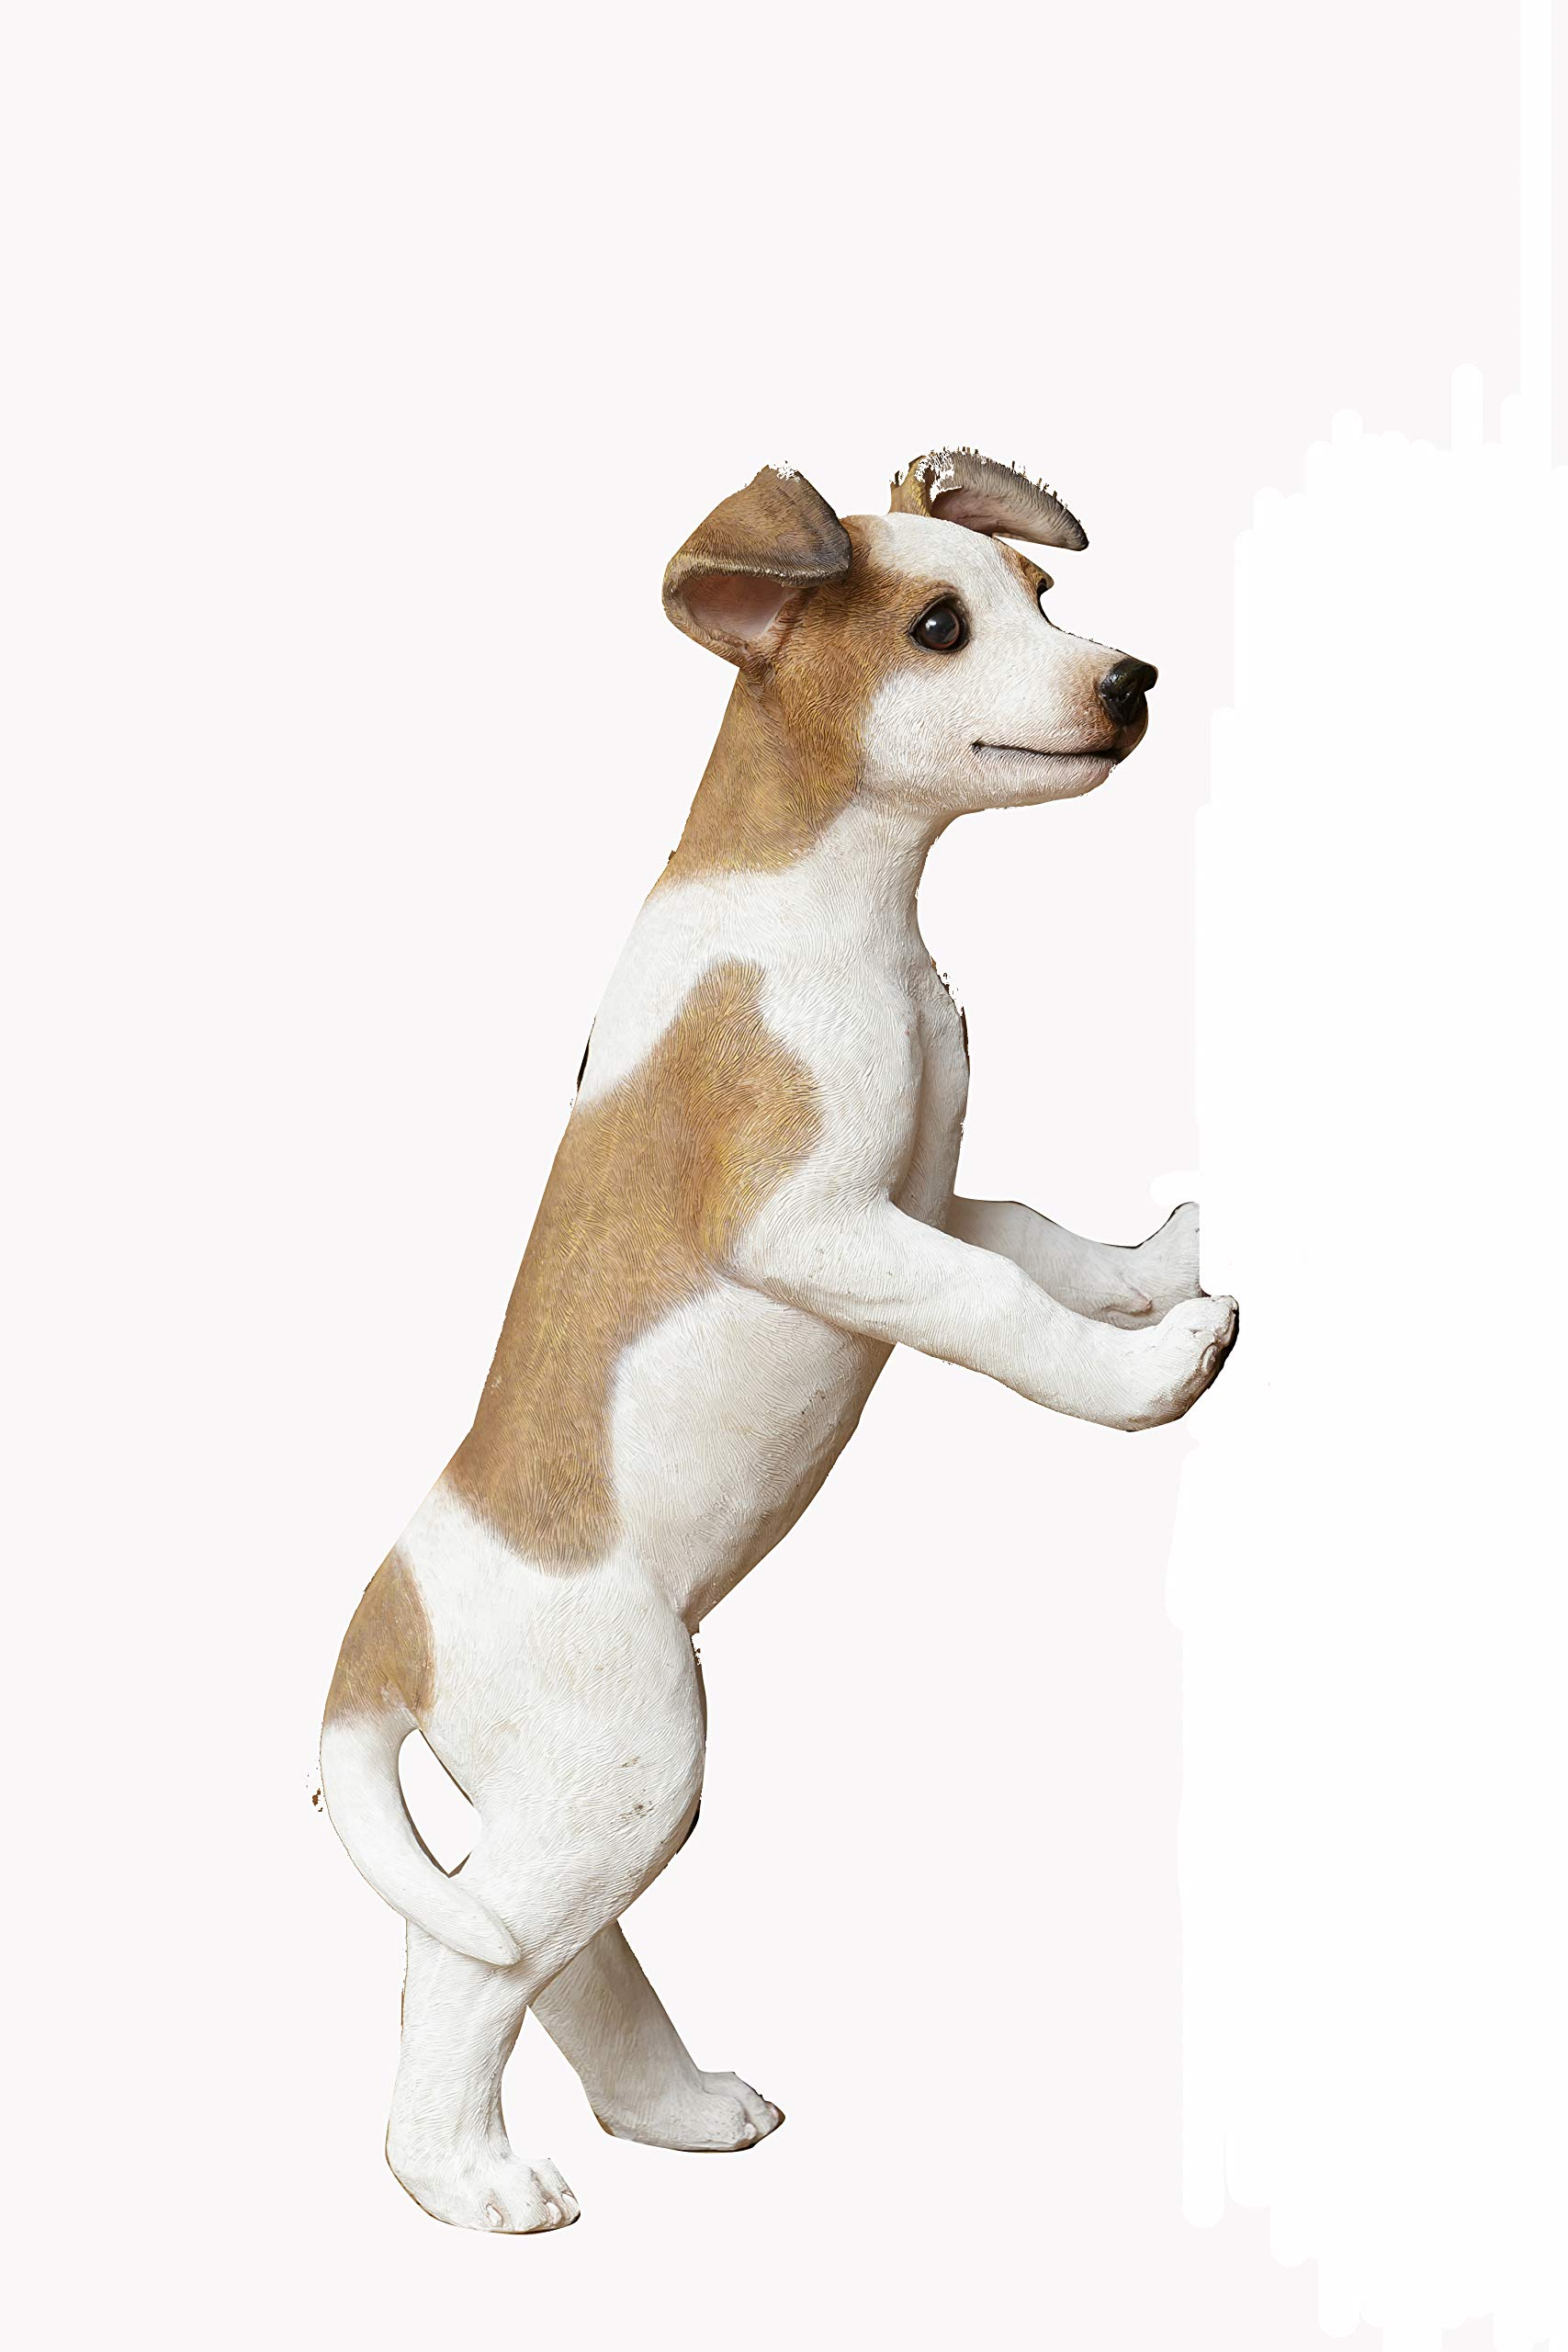 Your Heart's Delight Your Jackie Standing On Hind Legs Dog Figure, Multi